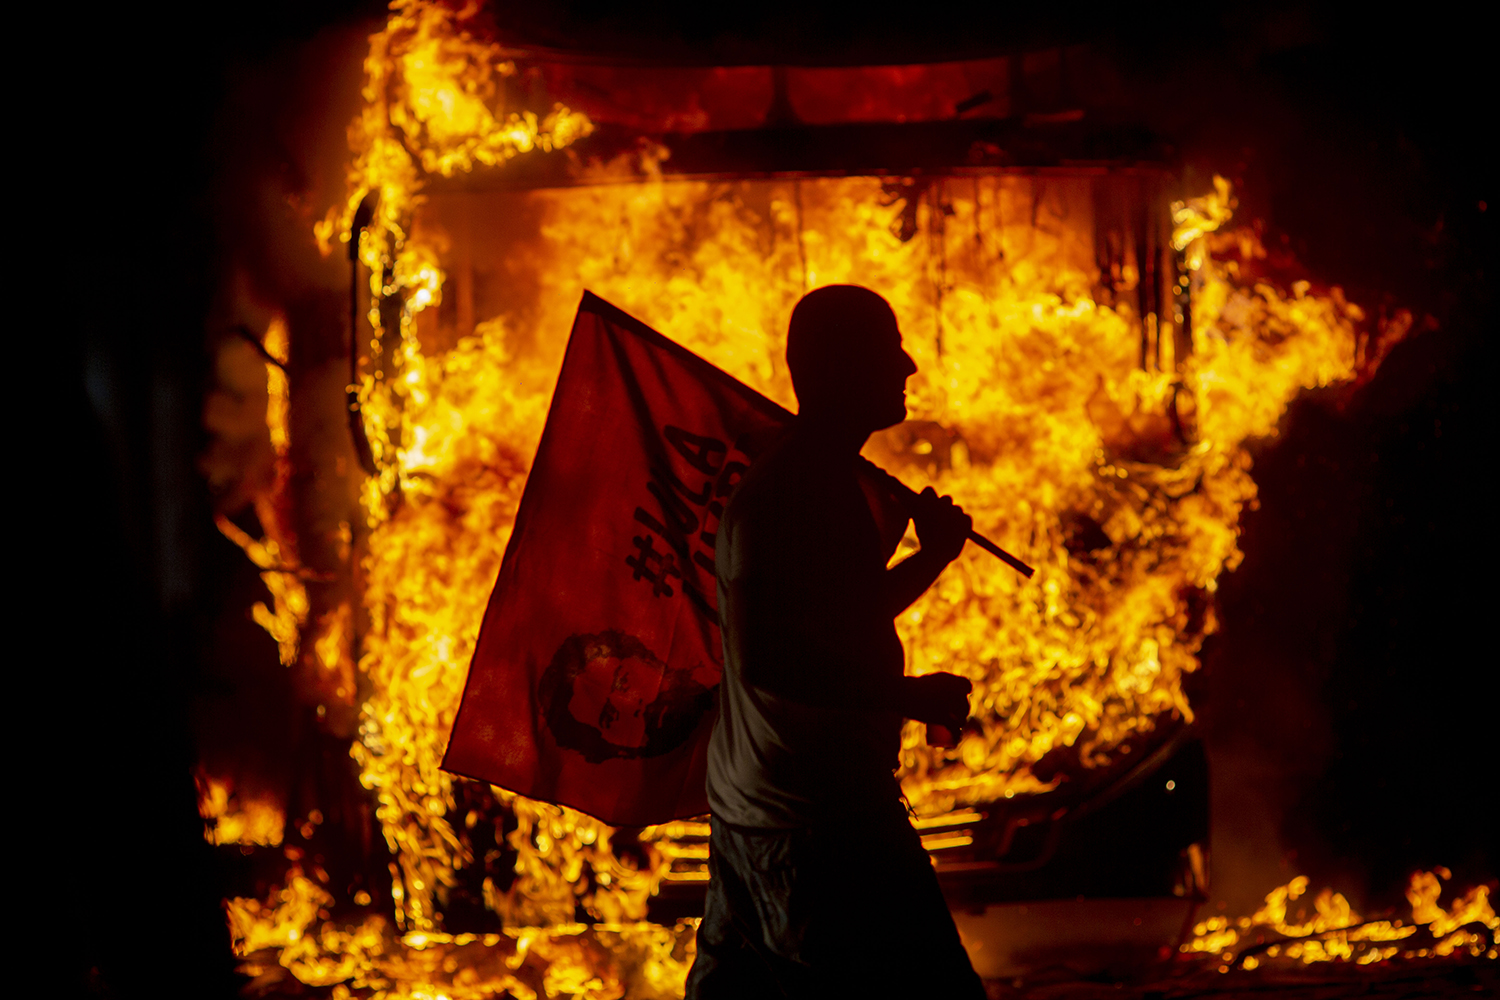 BRAZIL | A man holds a flag depicting former Brazilian President Luis Inacio Lula da Silva past a bus in flames during a protest organized by the National Students Union in Rio de Janeiro on May 15. Students and teachers from hundreds of universities and colleges began a nationwide demonstration in defense of education following a raft of budget cuts announced by President Jair Bolsonaro's government. MAURO PIMENTEL/AFP/Getty Images